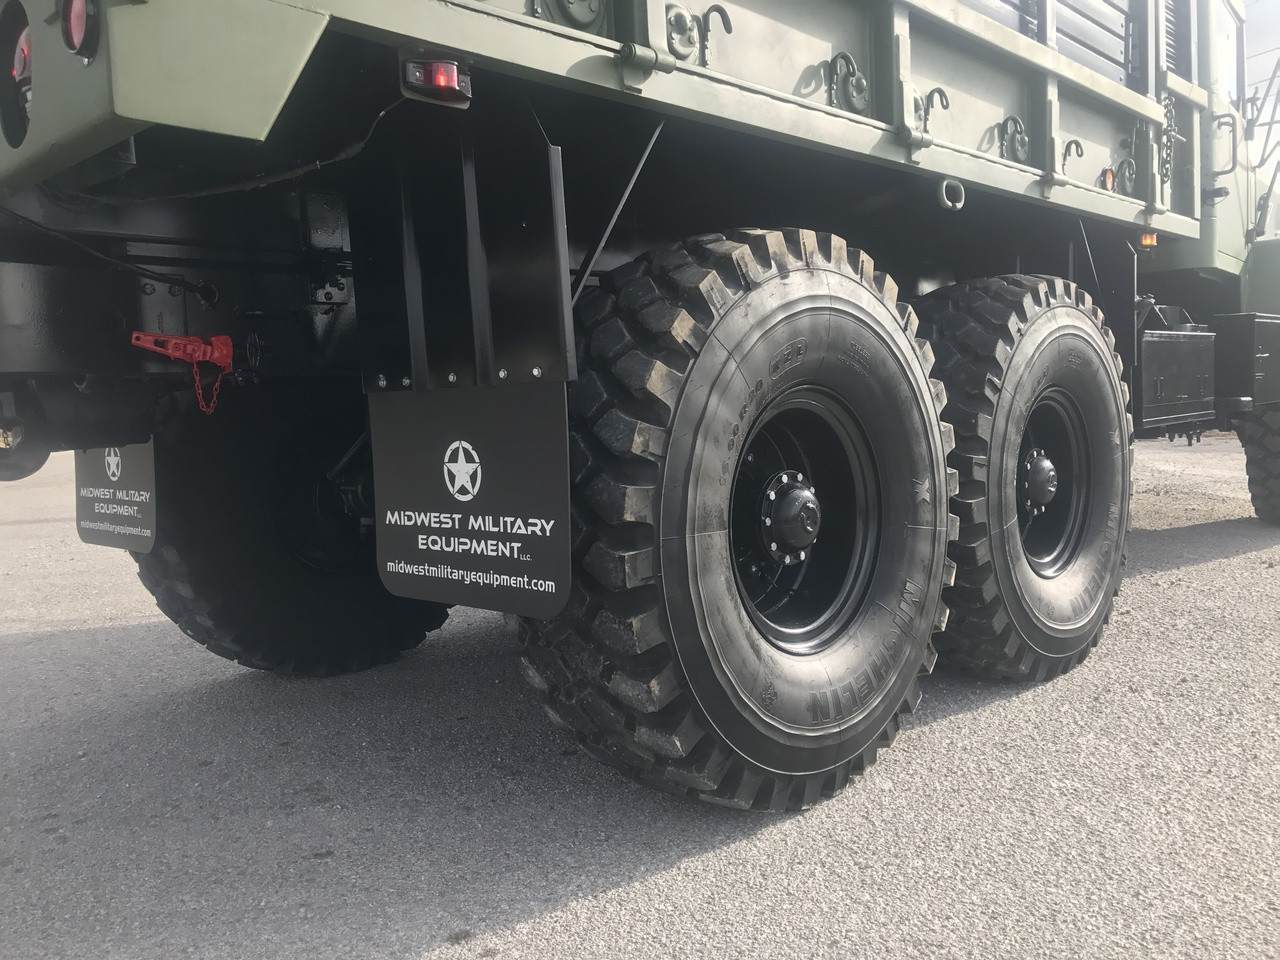 M925A2 5 TON MILITARY 6 X 6 Cargo TRUCK WITH WINCH SOLD